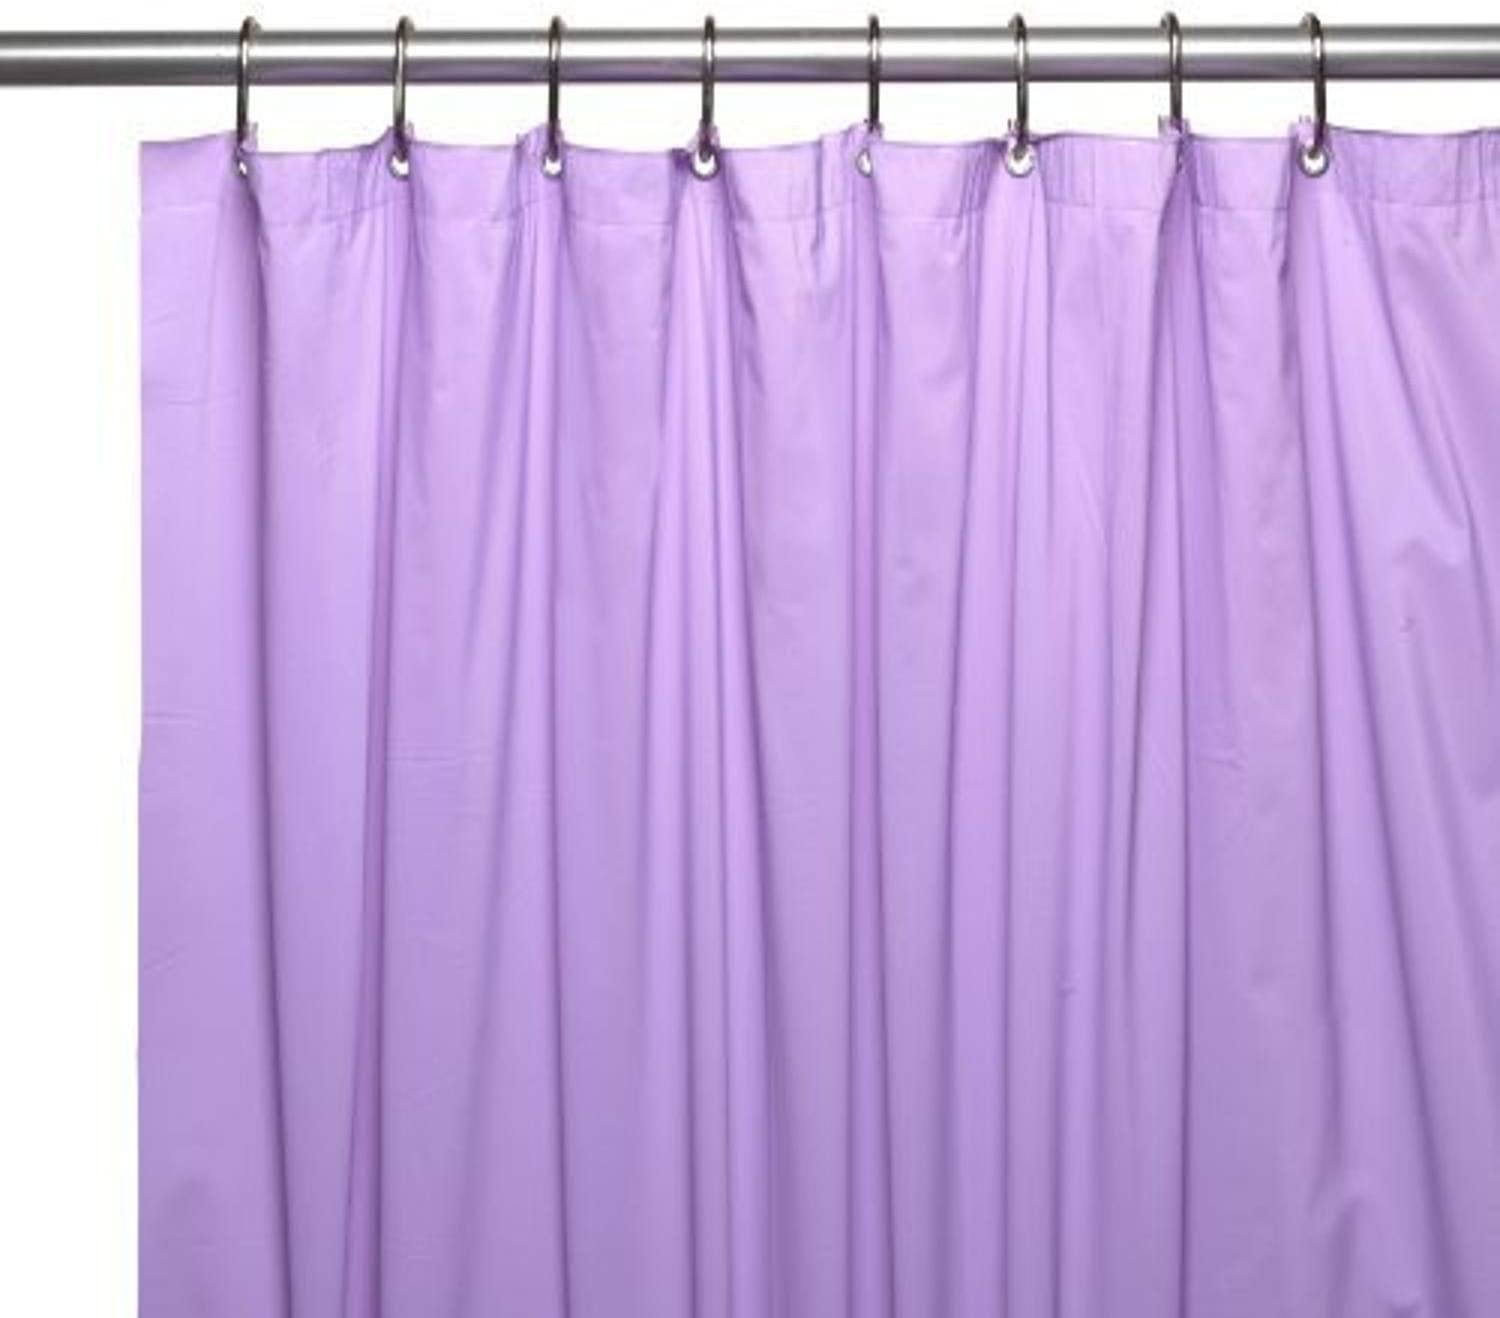 Carnation Home Fashions Hotel Collection Shower Vinyl Fresno specialty shop Mall Cu 8-Gauge